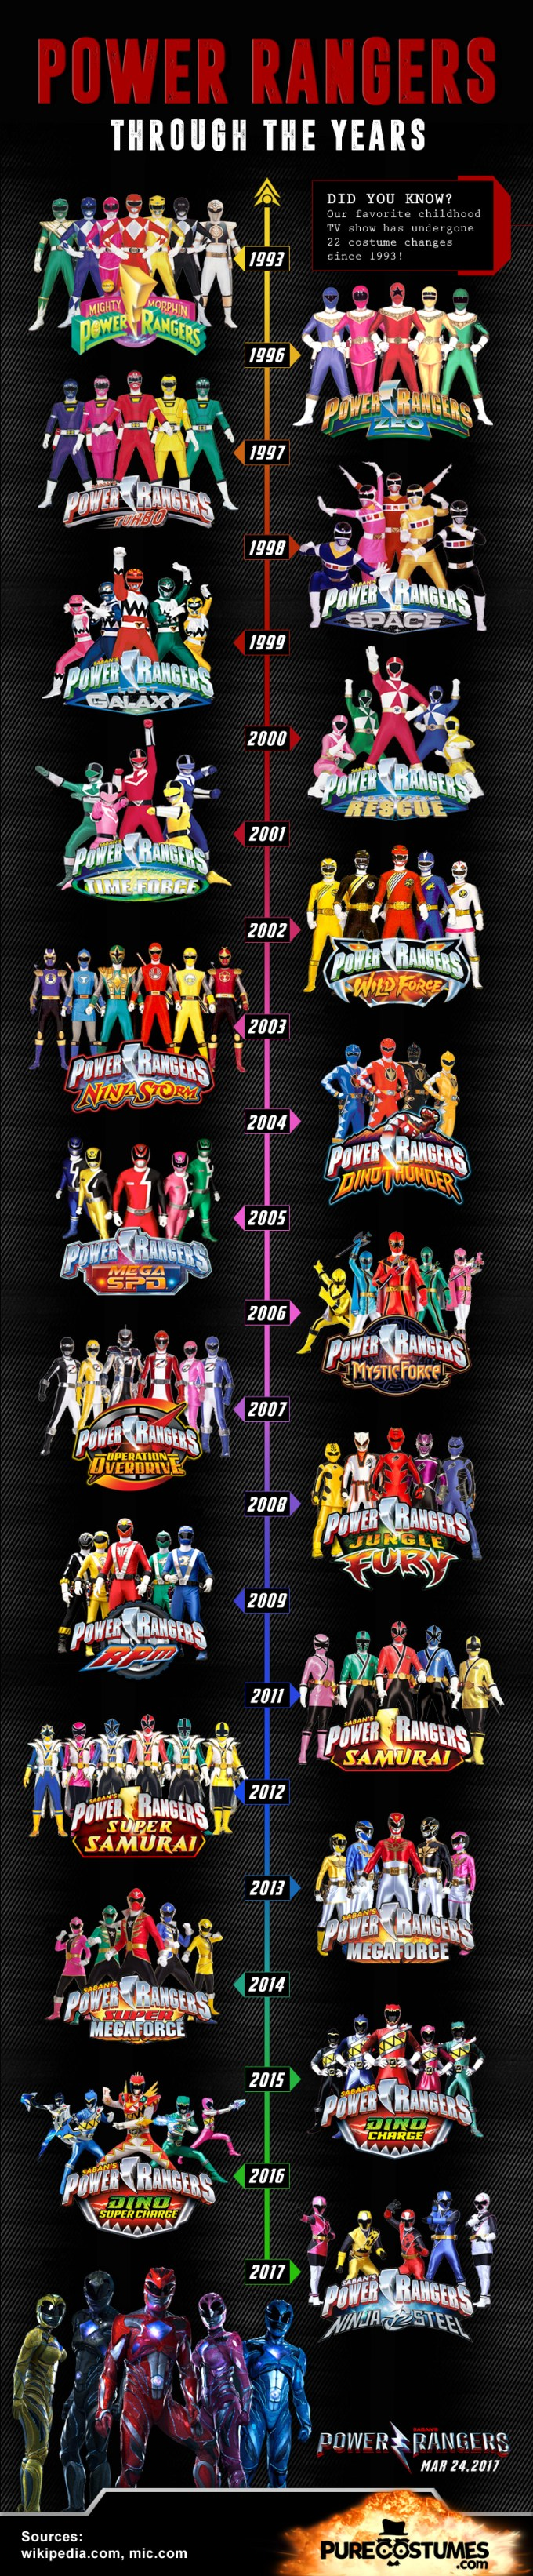 Infographic: Power Rangers Through the Years